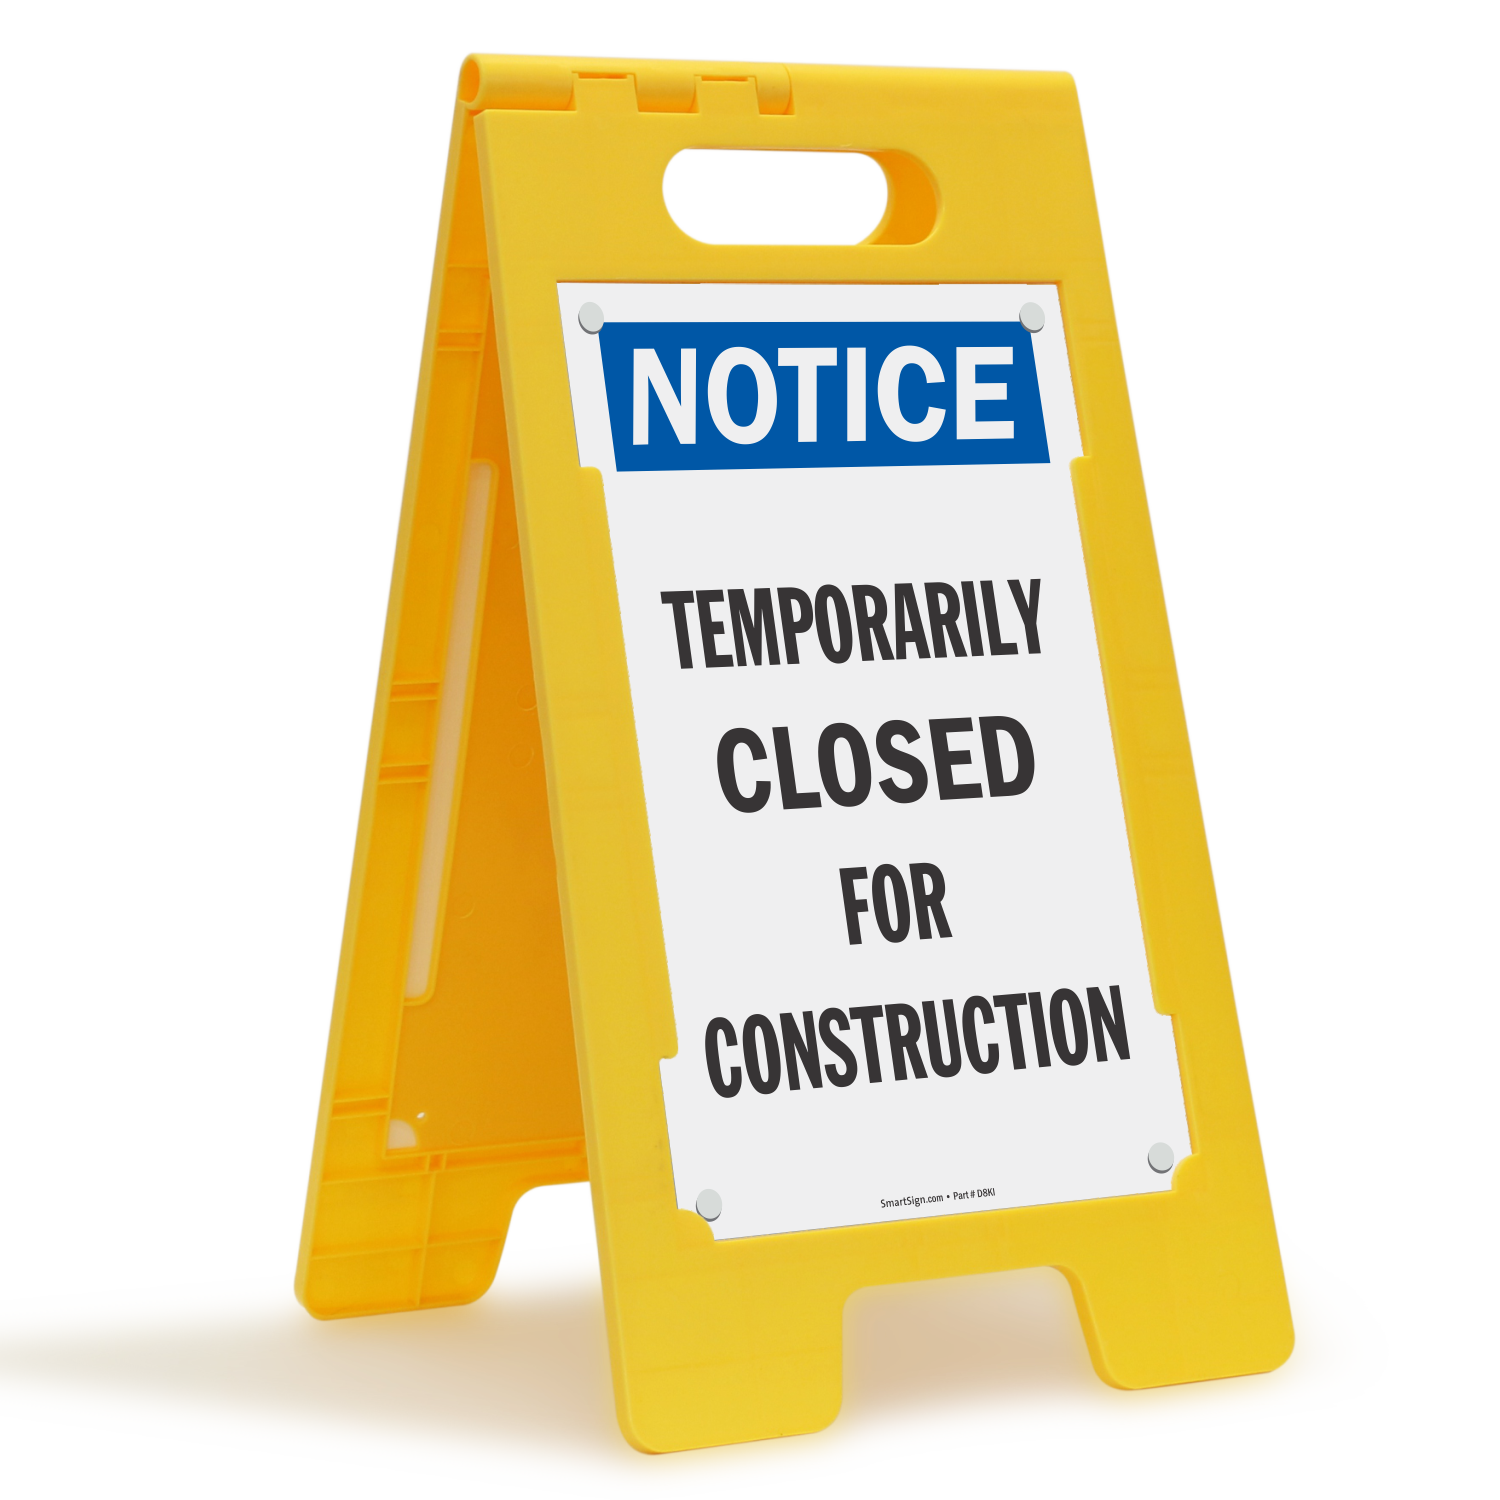 Temporarily Closed For Construction Notice Floor Standing Sign